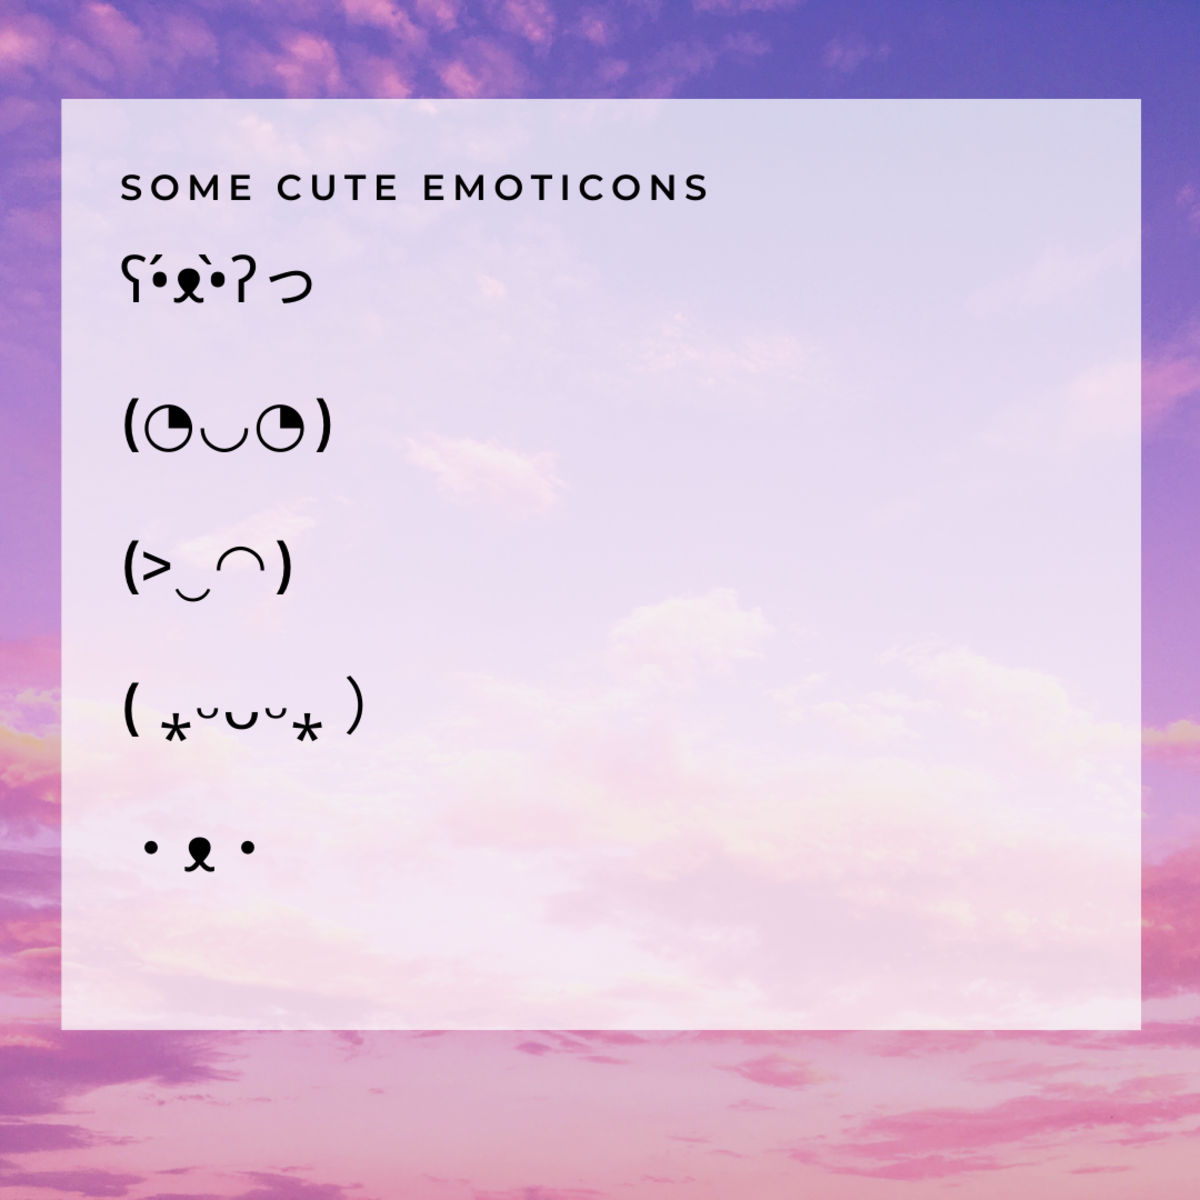 Here are some super cute emoticons to inspire you!